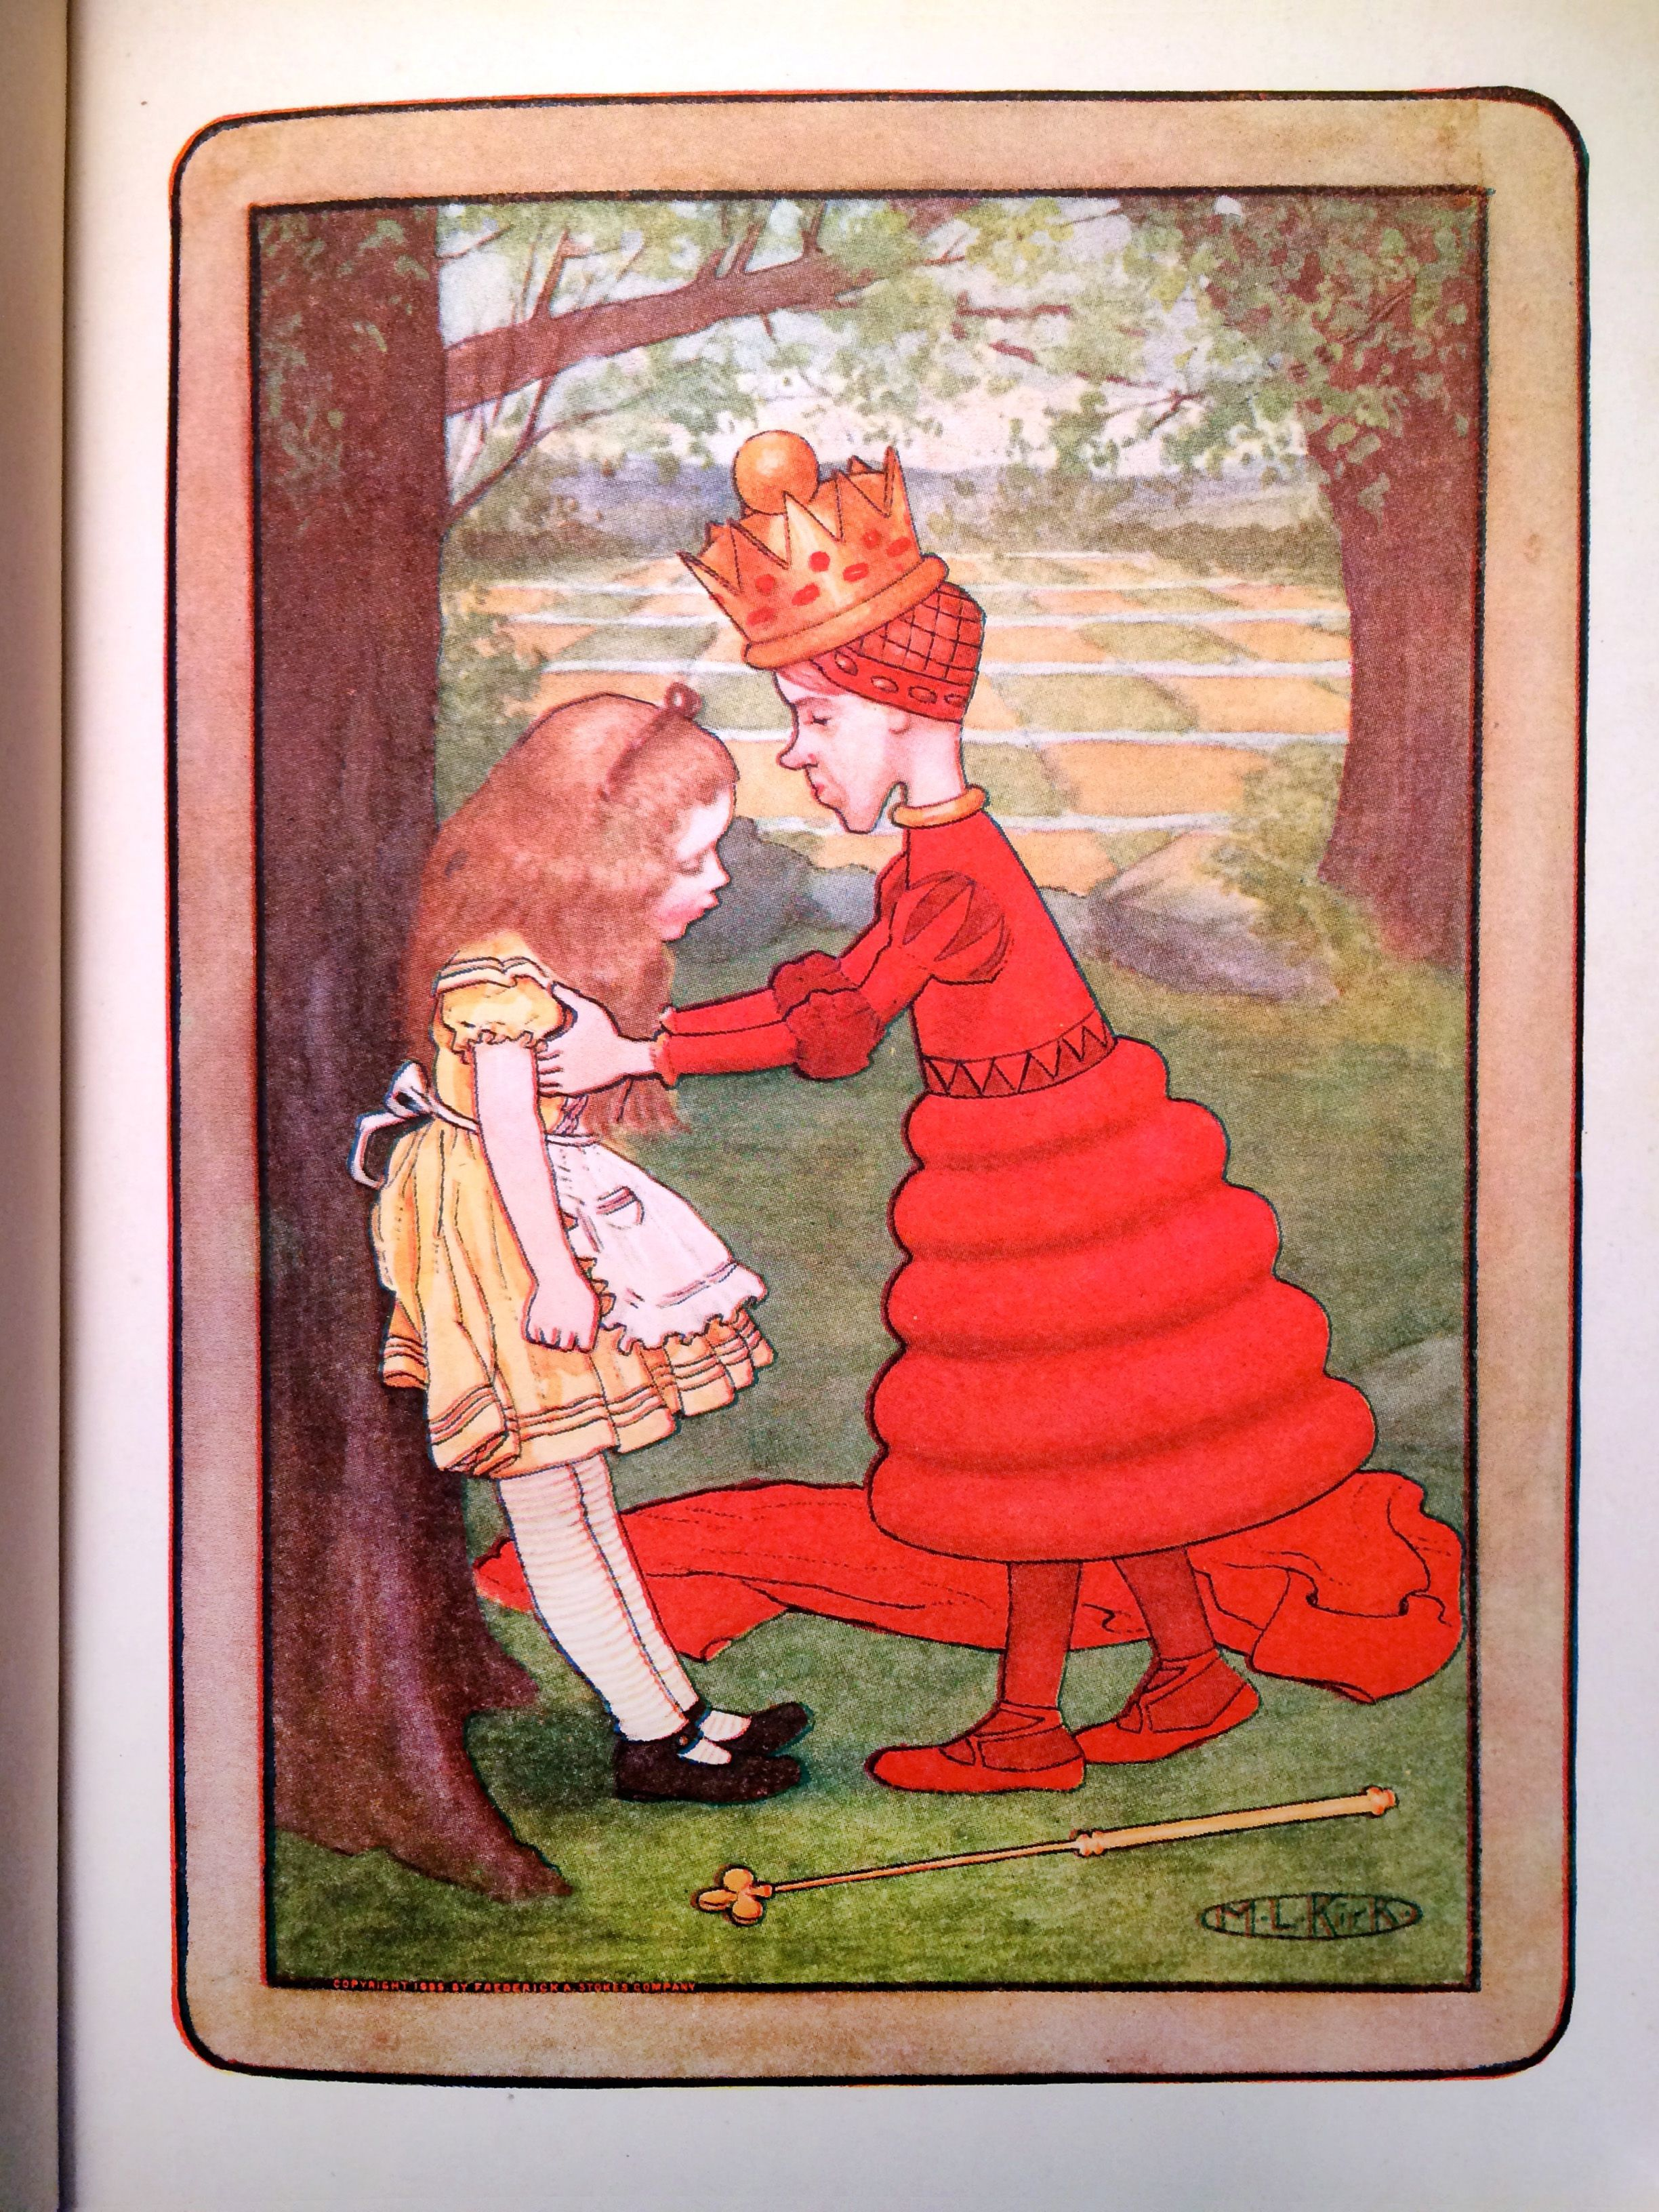 Through The Looking Glass. Lewis Carroll. Illustrated by M.L. Kirk & John Tenniel. Frederick A. Stokes Co - NY. c1904